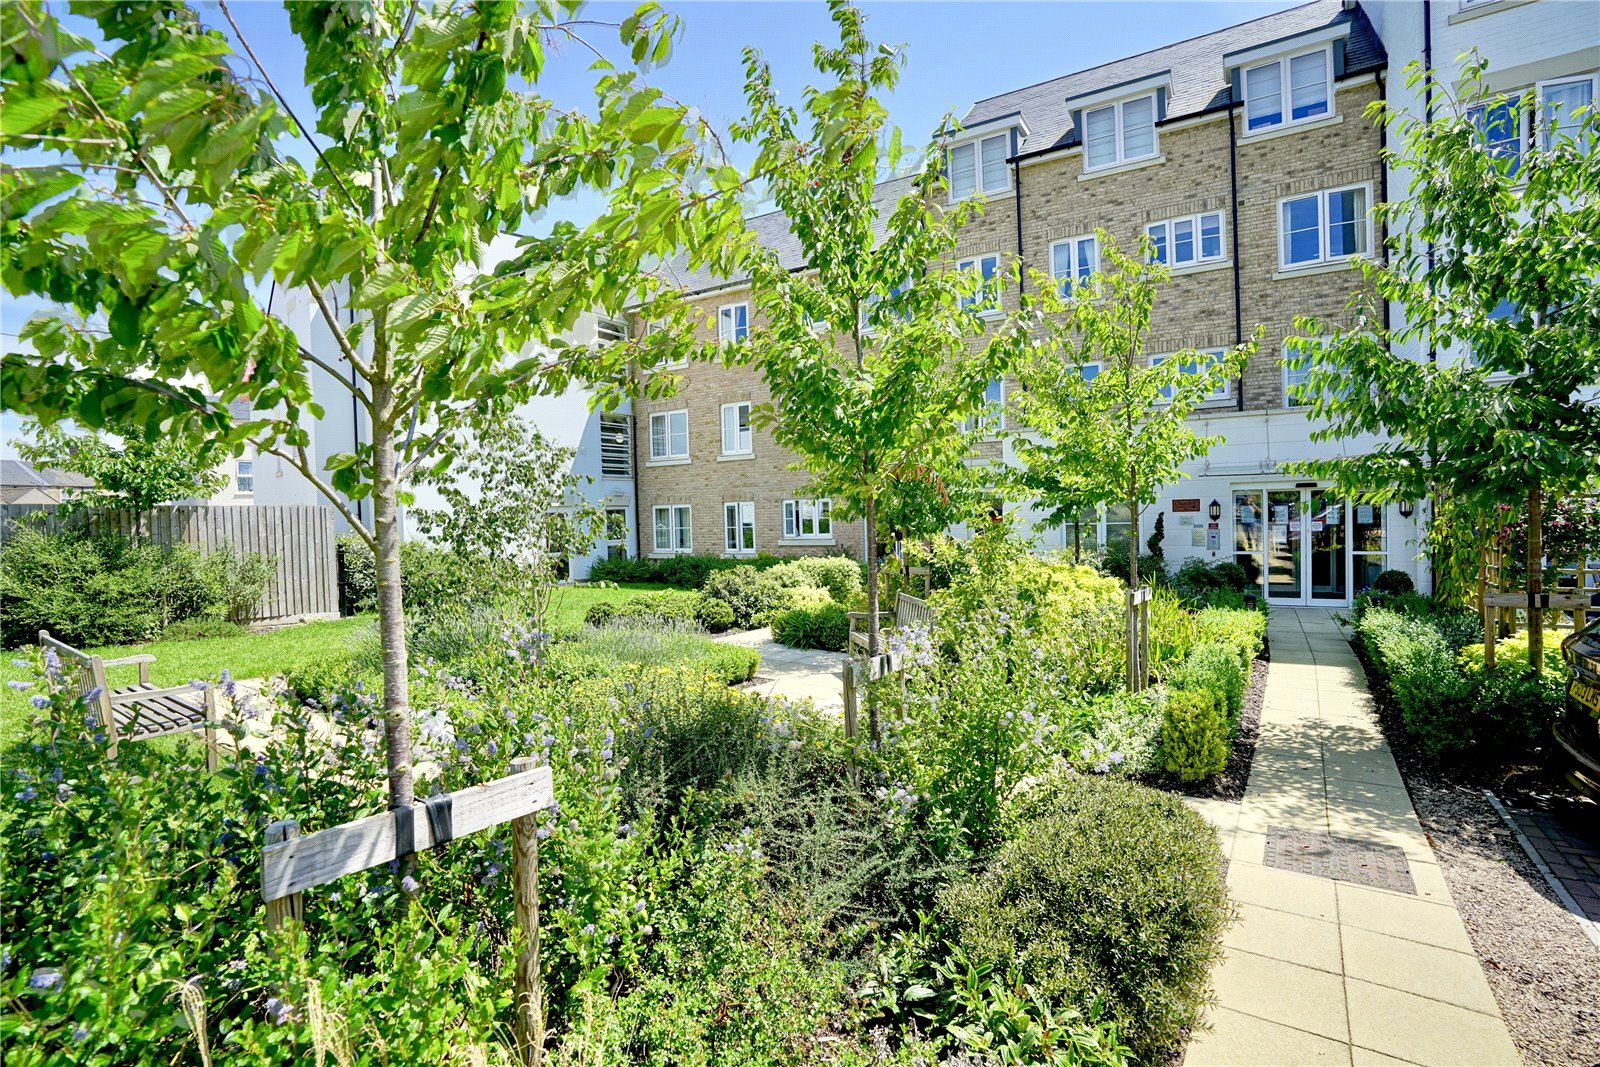 2 bed apartment for sale in Edison Bell Way, PE29 3FD 0